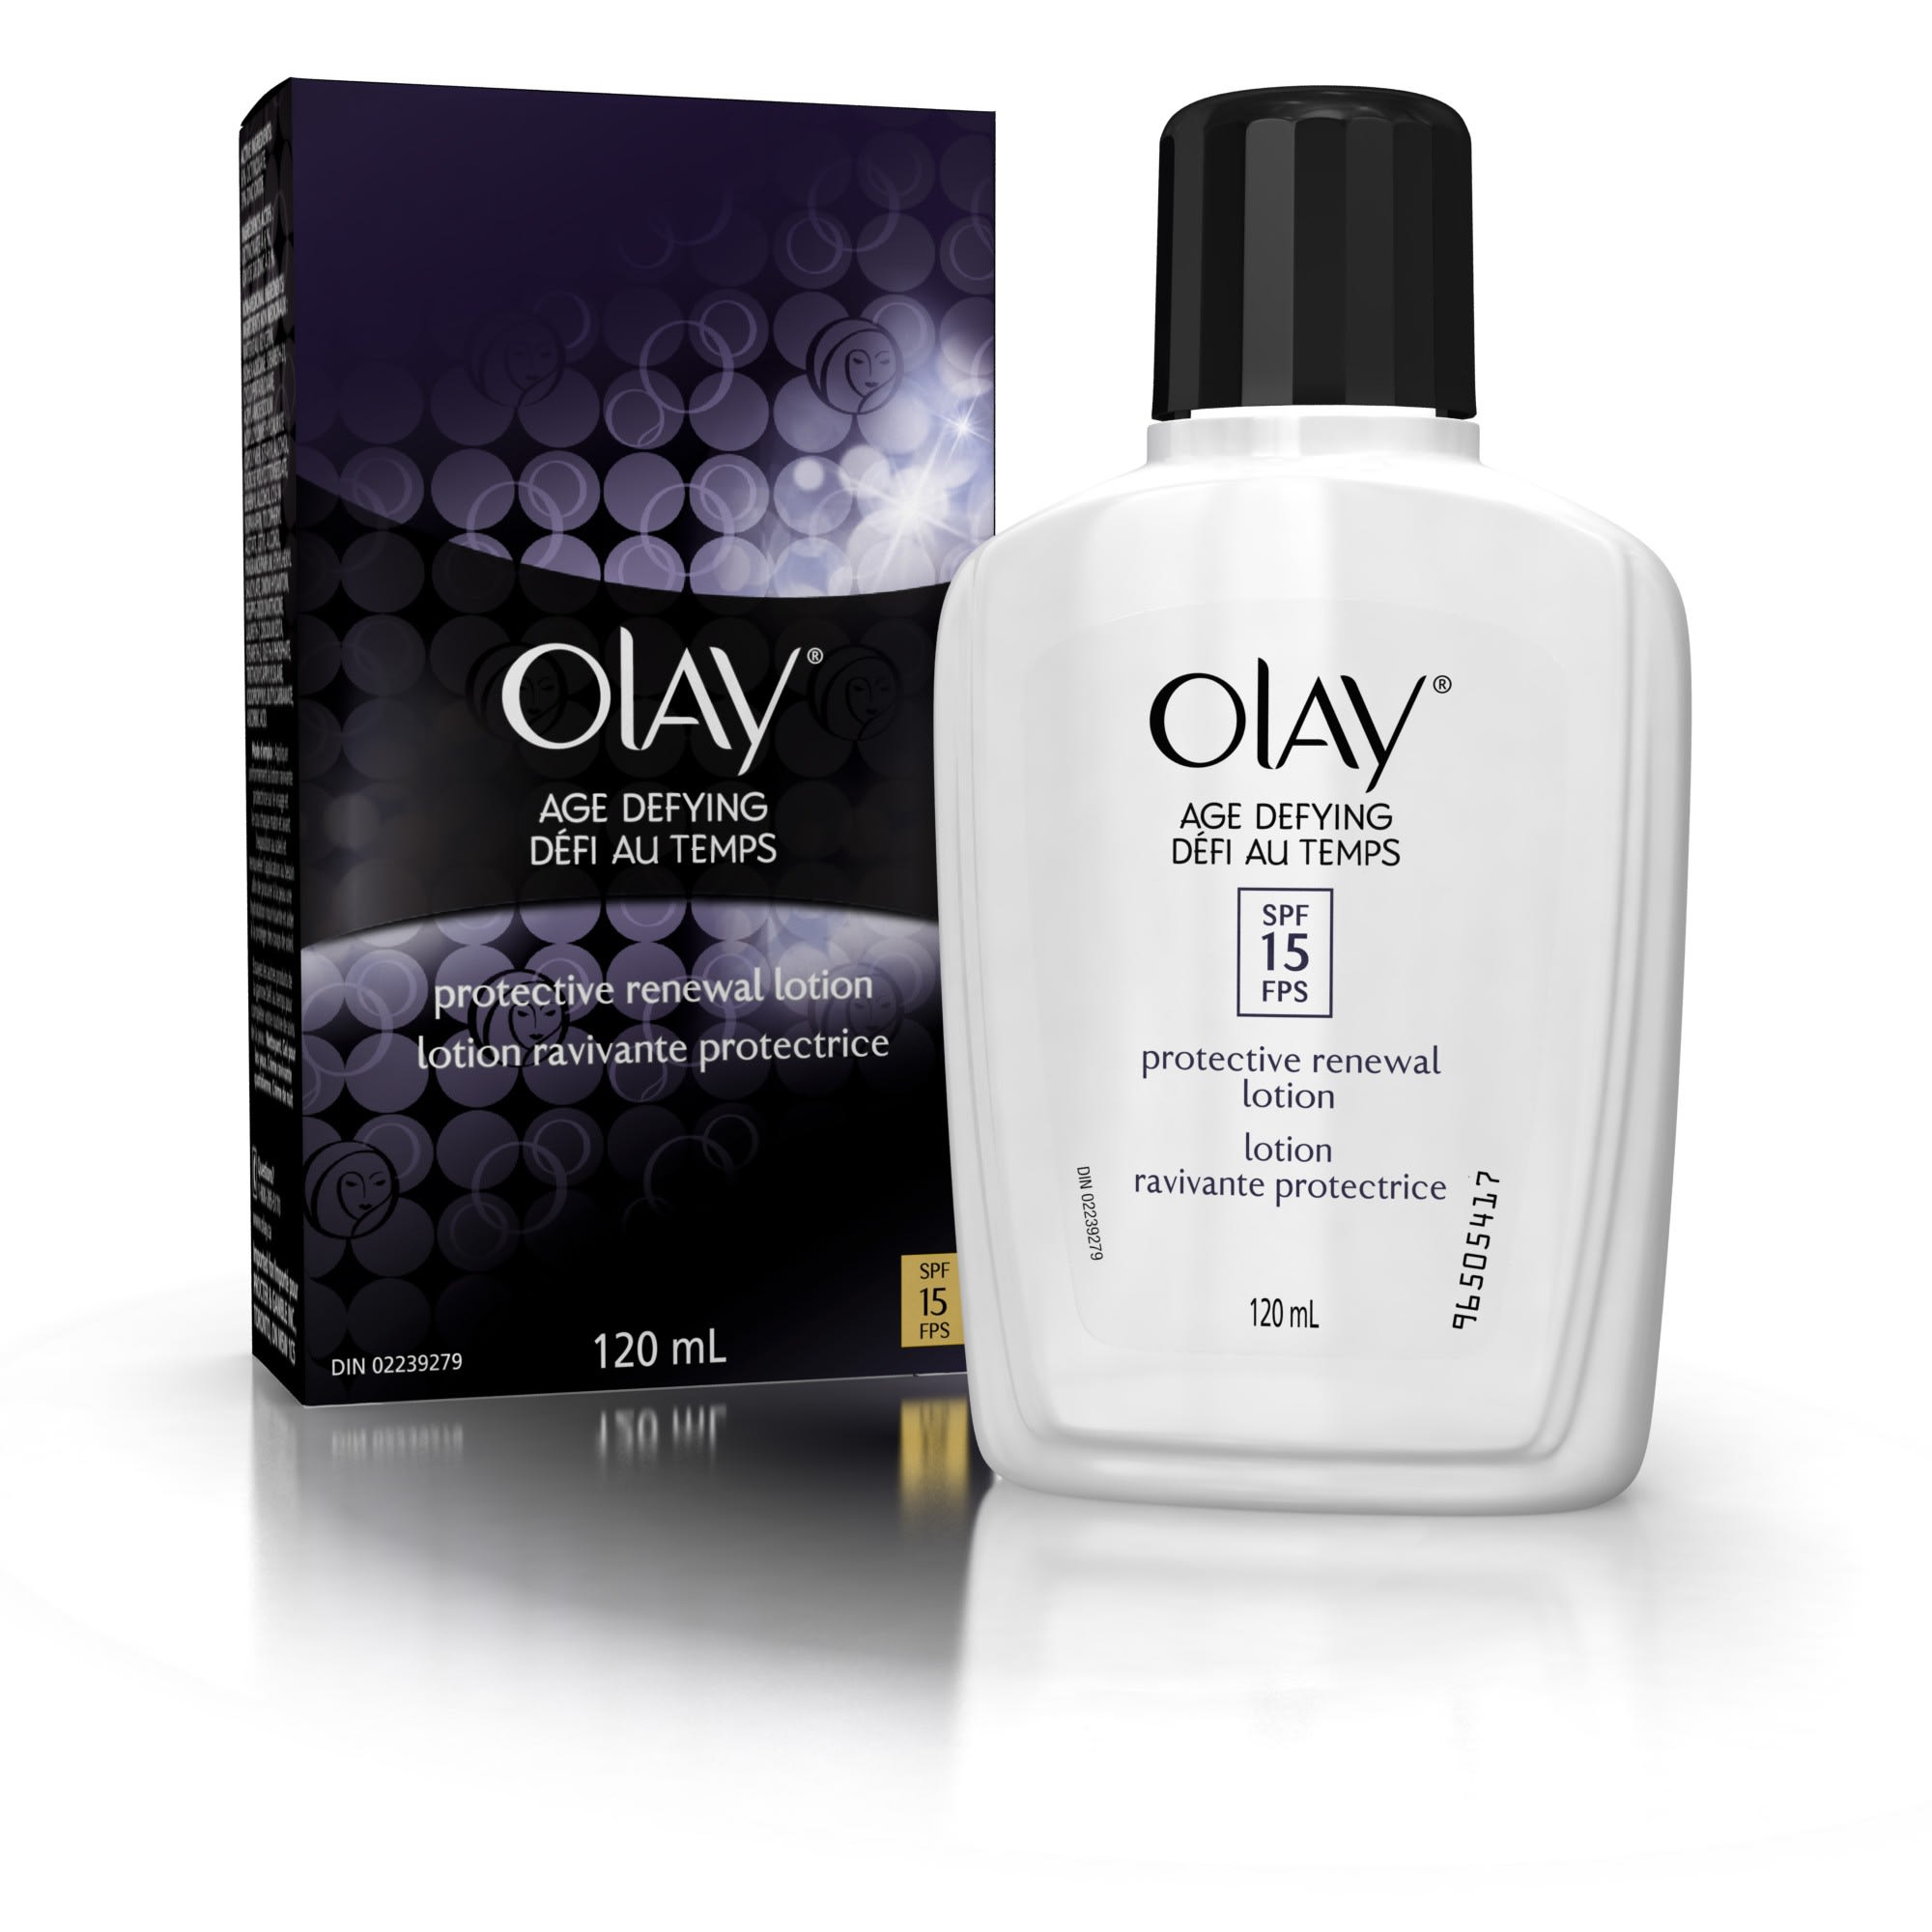 Classic Protective Renewal Lotion